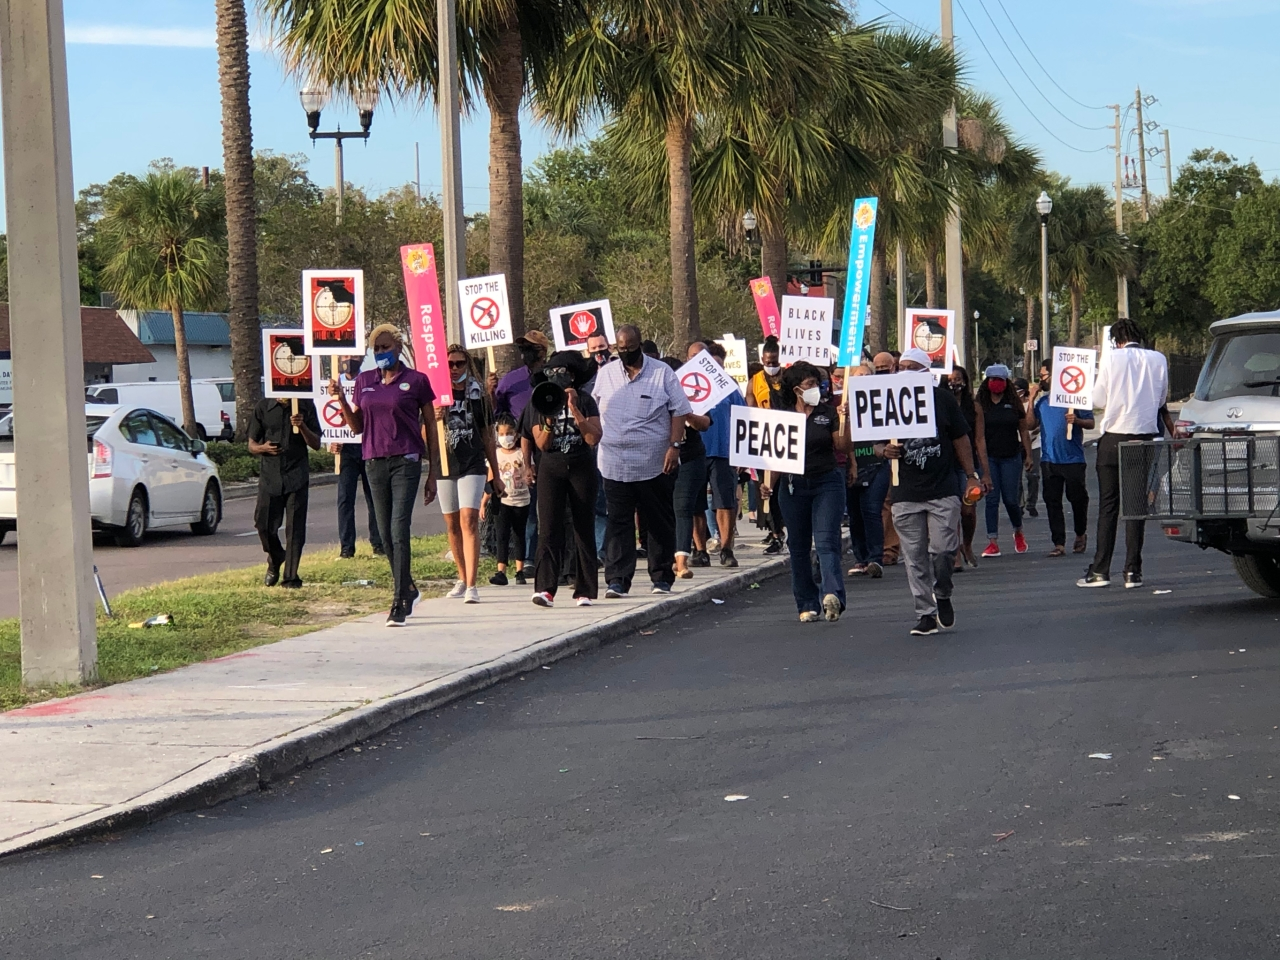 'Enough is Enough' march in St. Petersburg demands end to gun violence